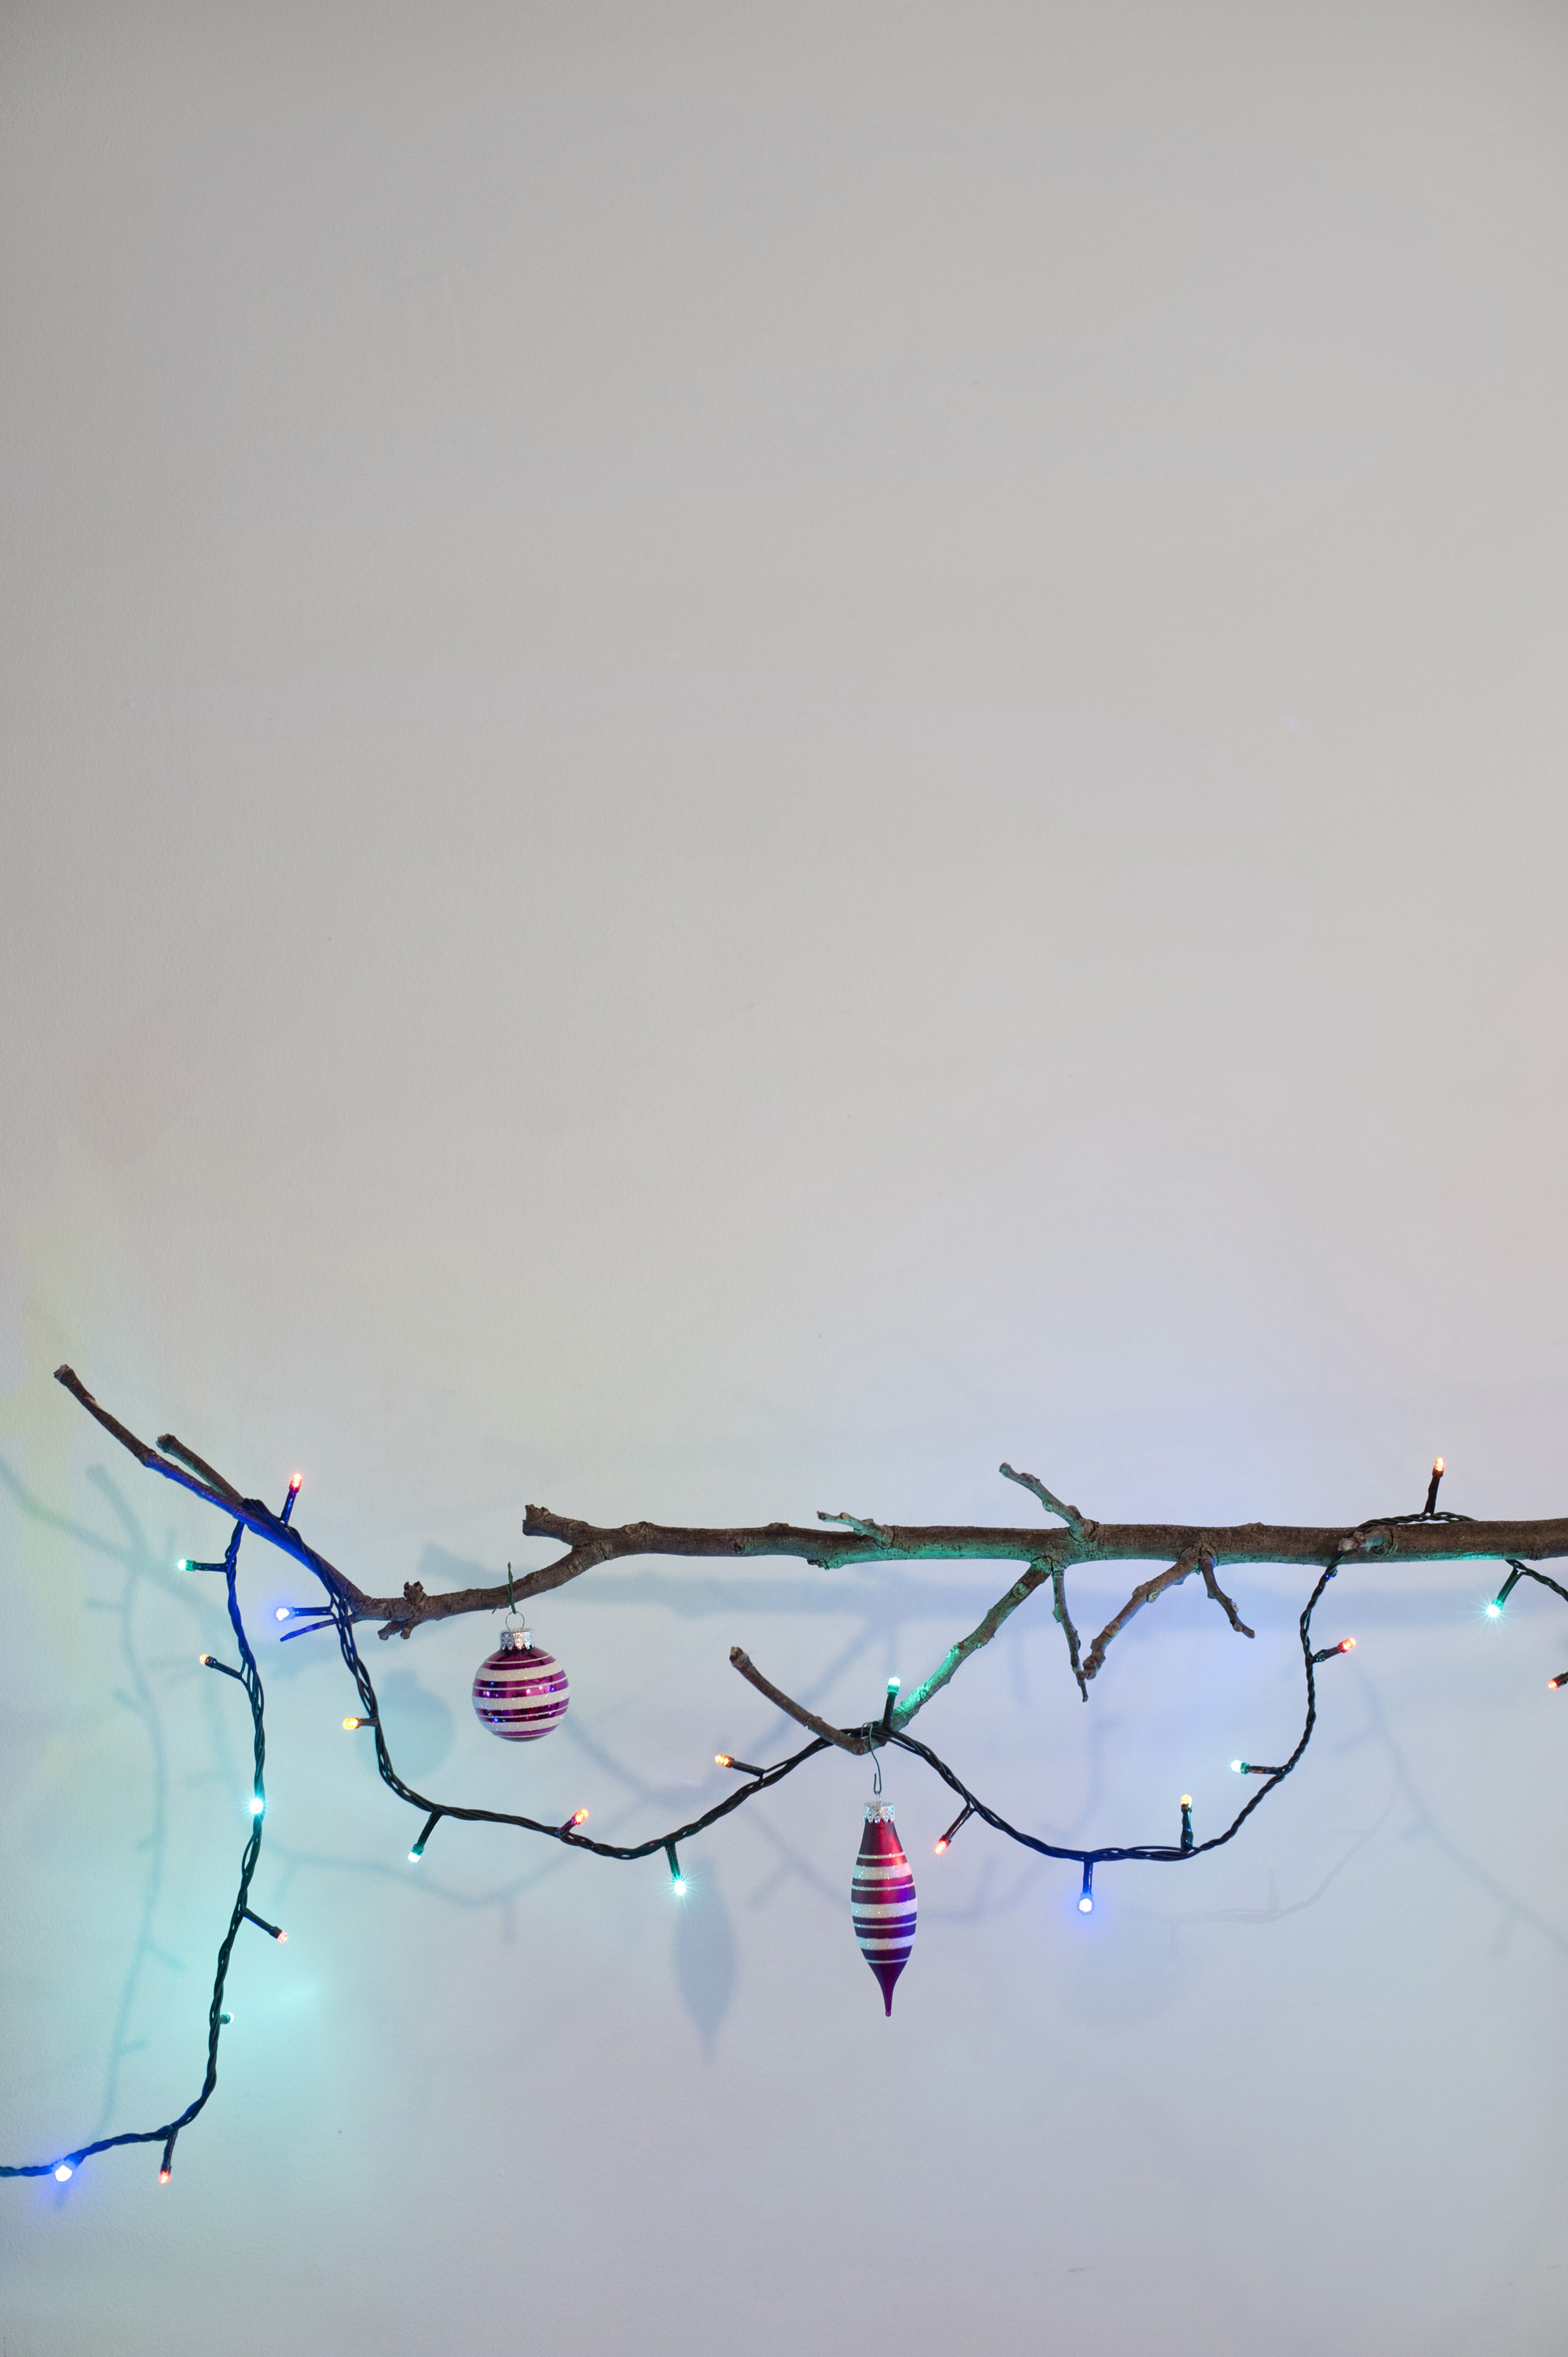 Christmas tree balls and lighted garland on leafless branch. Concept. Copy space